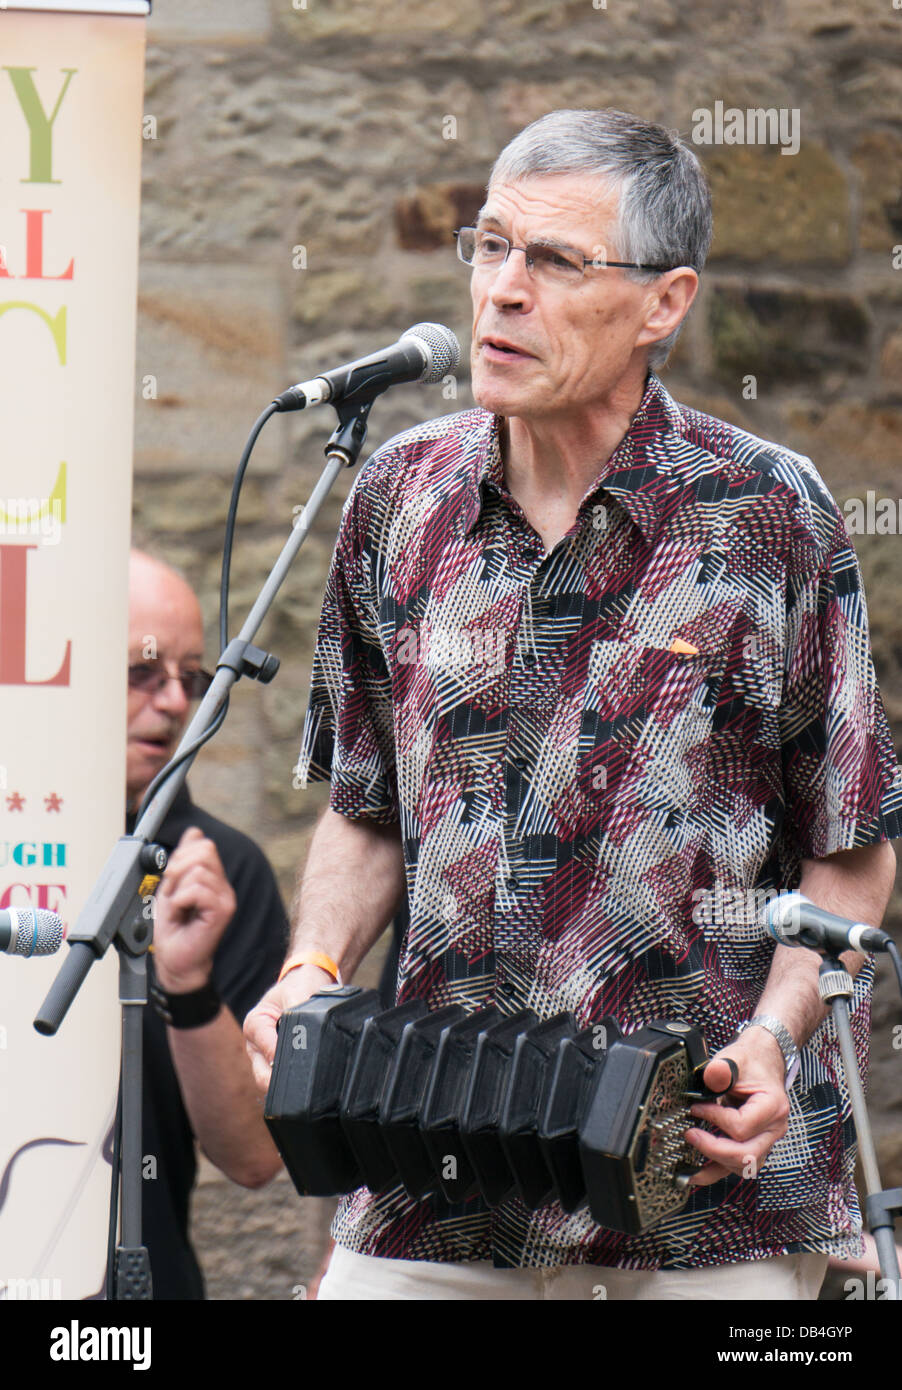 Alistair Anderson plays the concertina at the Rothbury Traditional Music Festival, northern England, UK - Stock Image